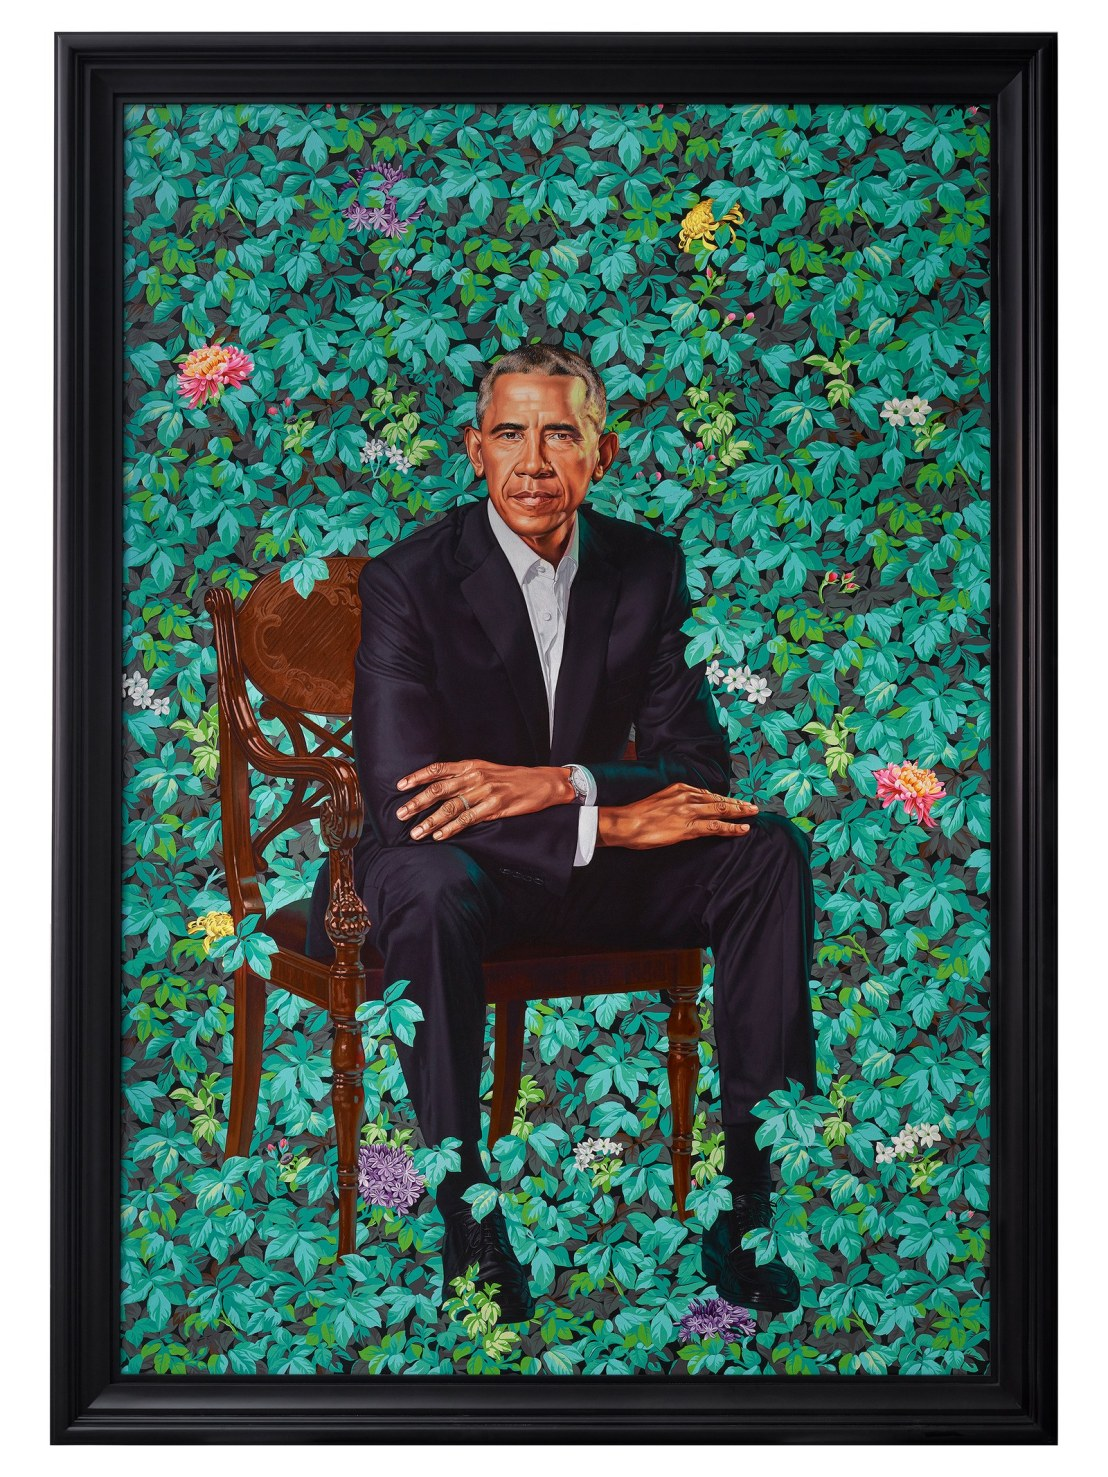 Wiley-KW-PA-17-037_Barack-Obama